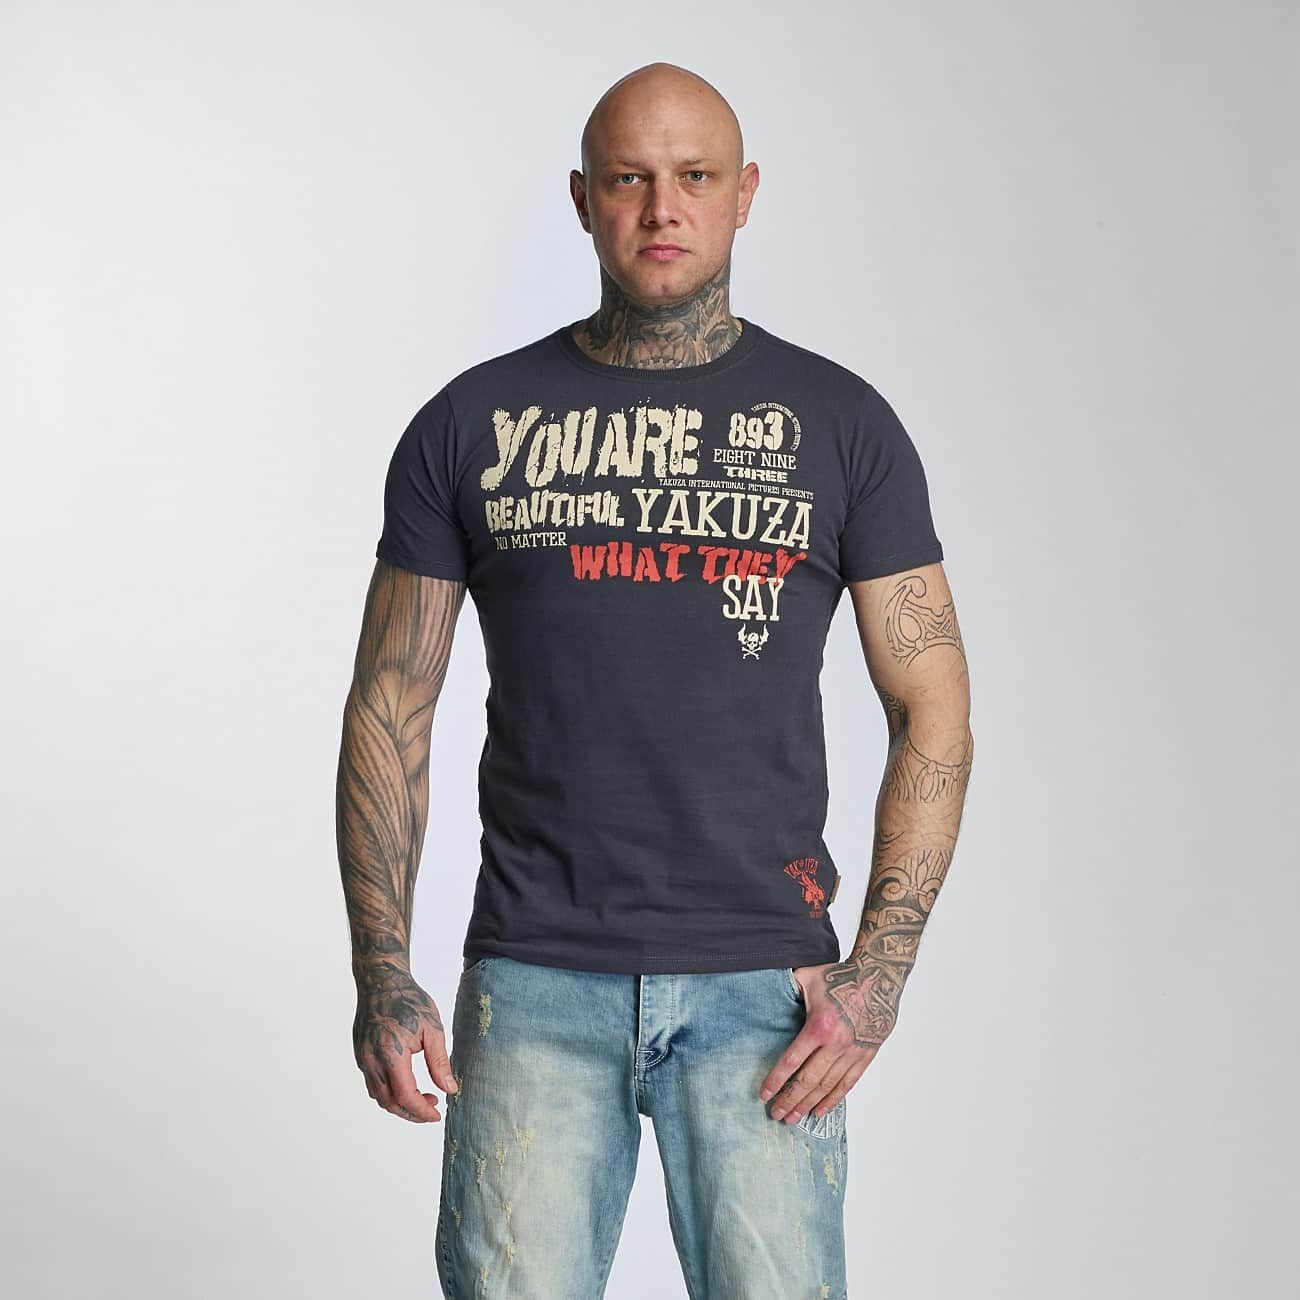 T Shirt With Slogans And Sayings Tshirt With Sarcastic Sayings Yakuza T Shirt T Shirt Shirt Online